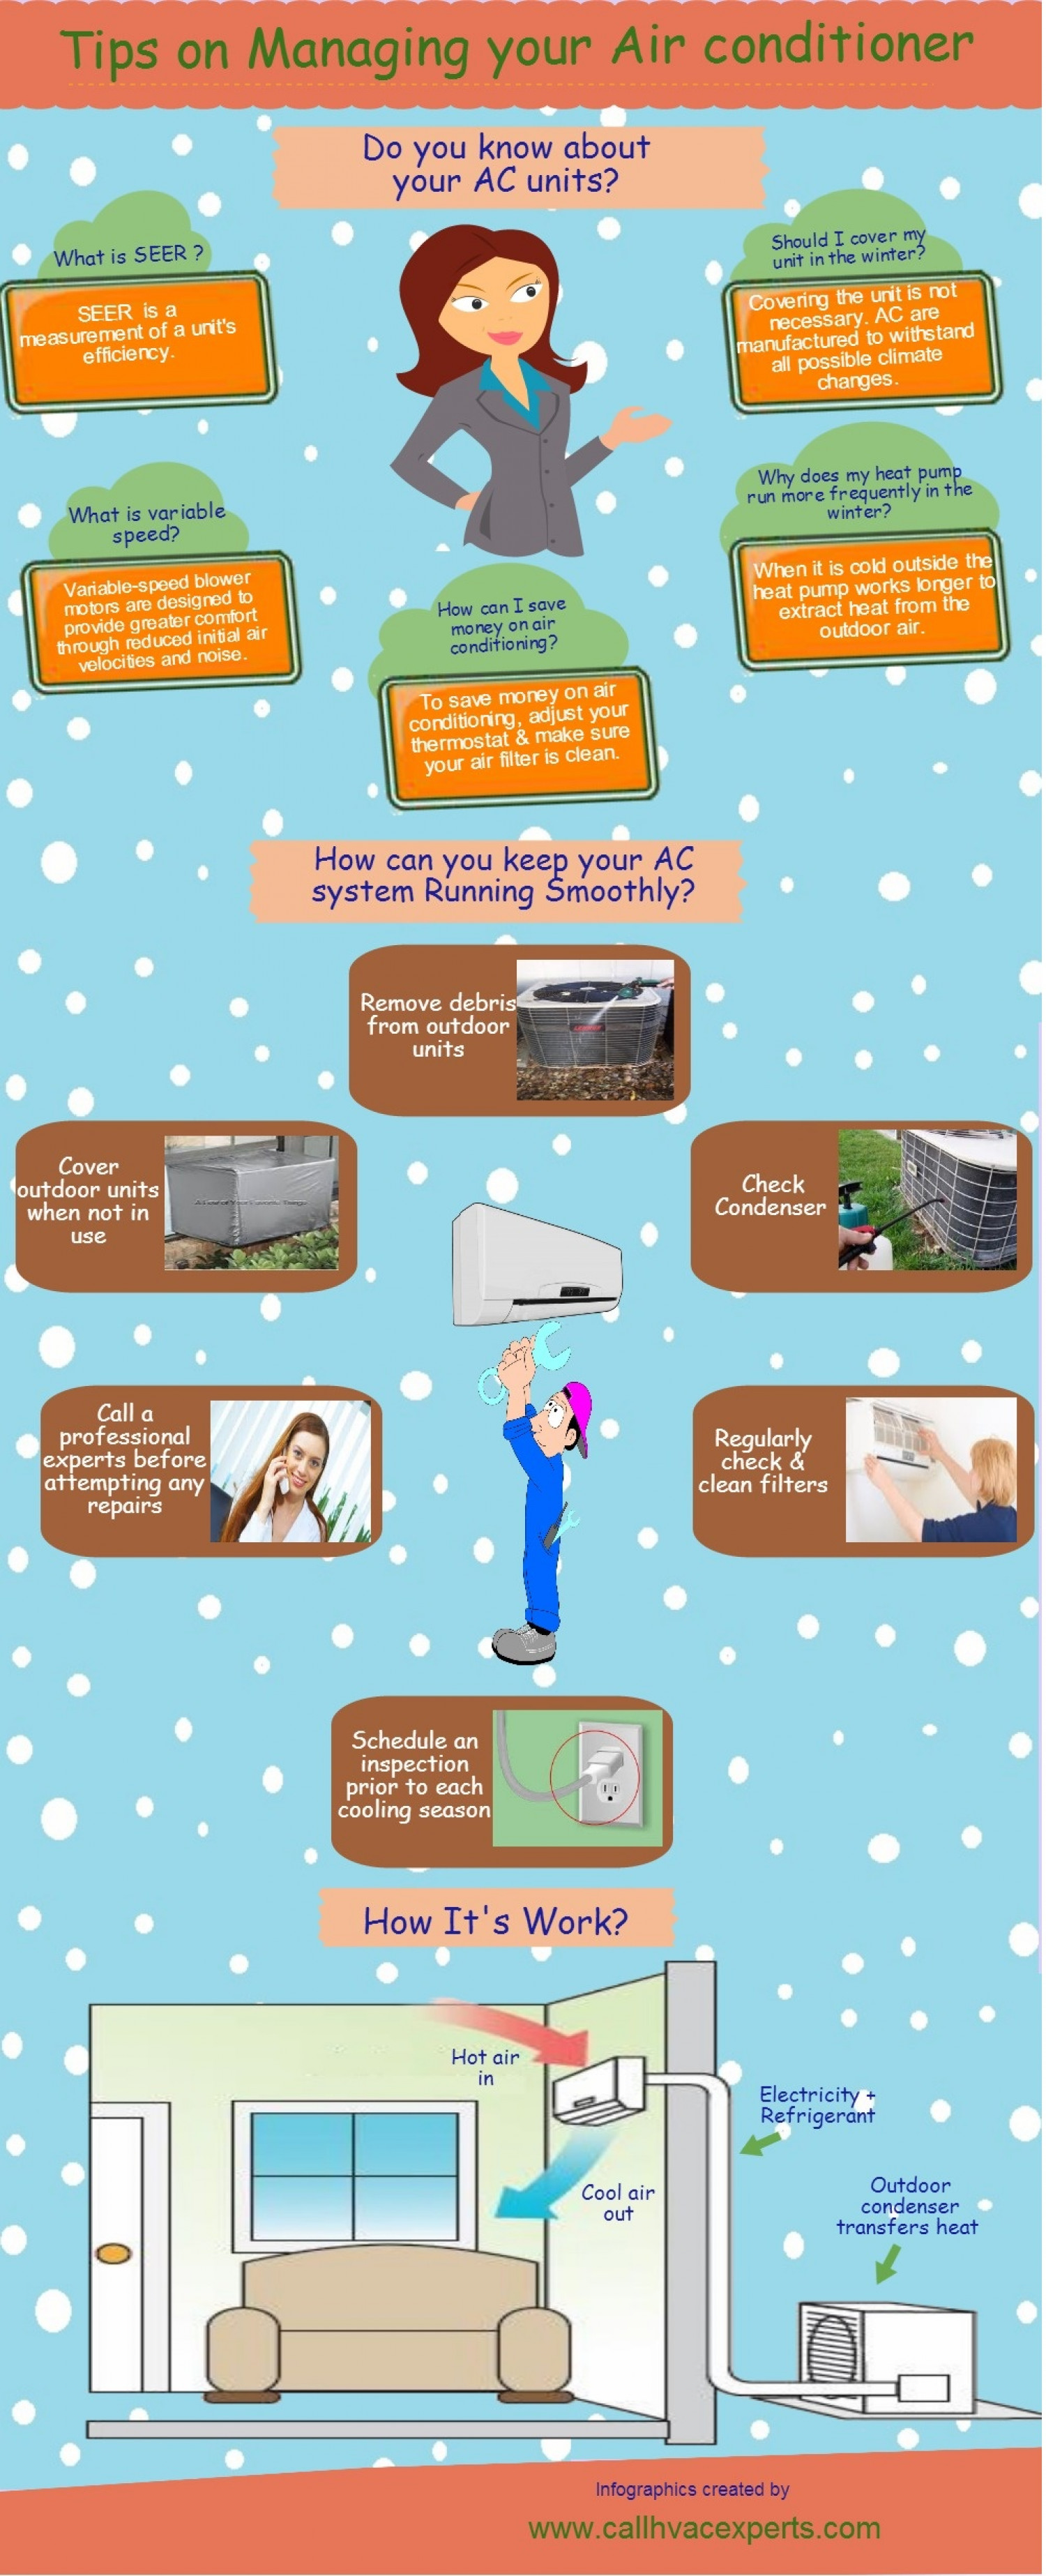 Tips on Managing your Air Conditioner Infographic